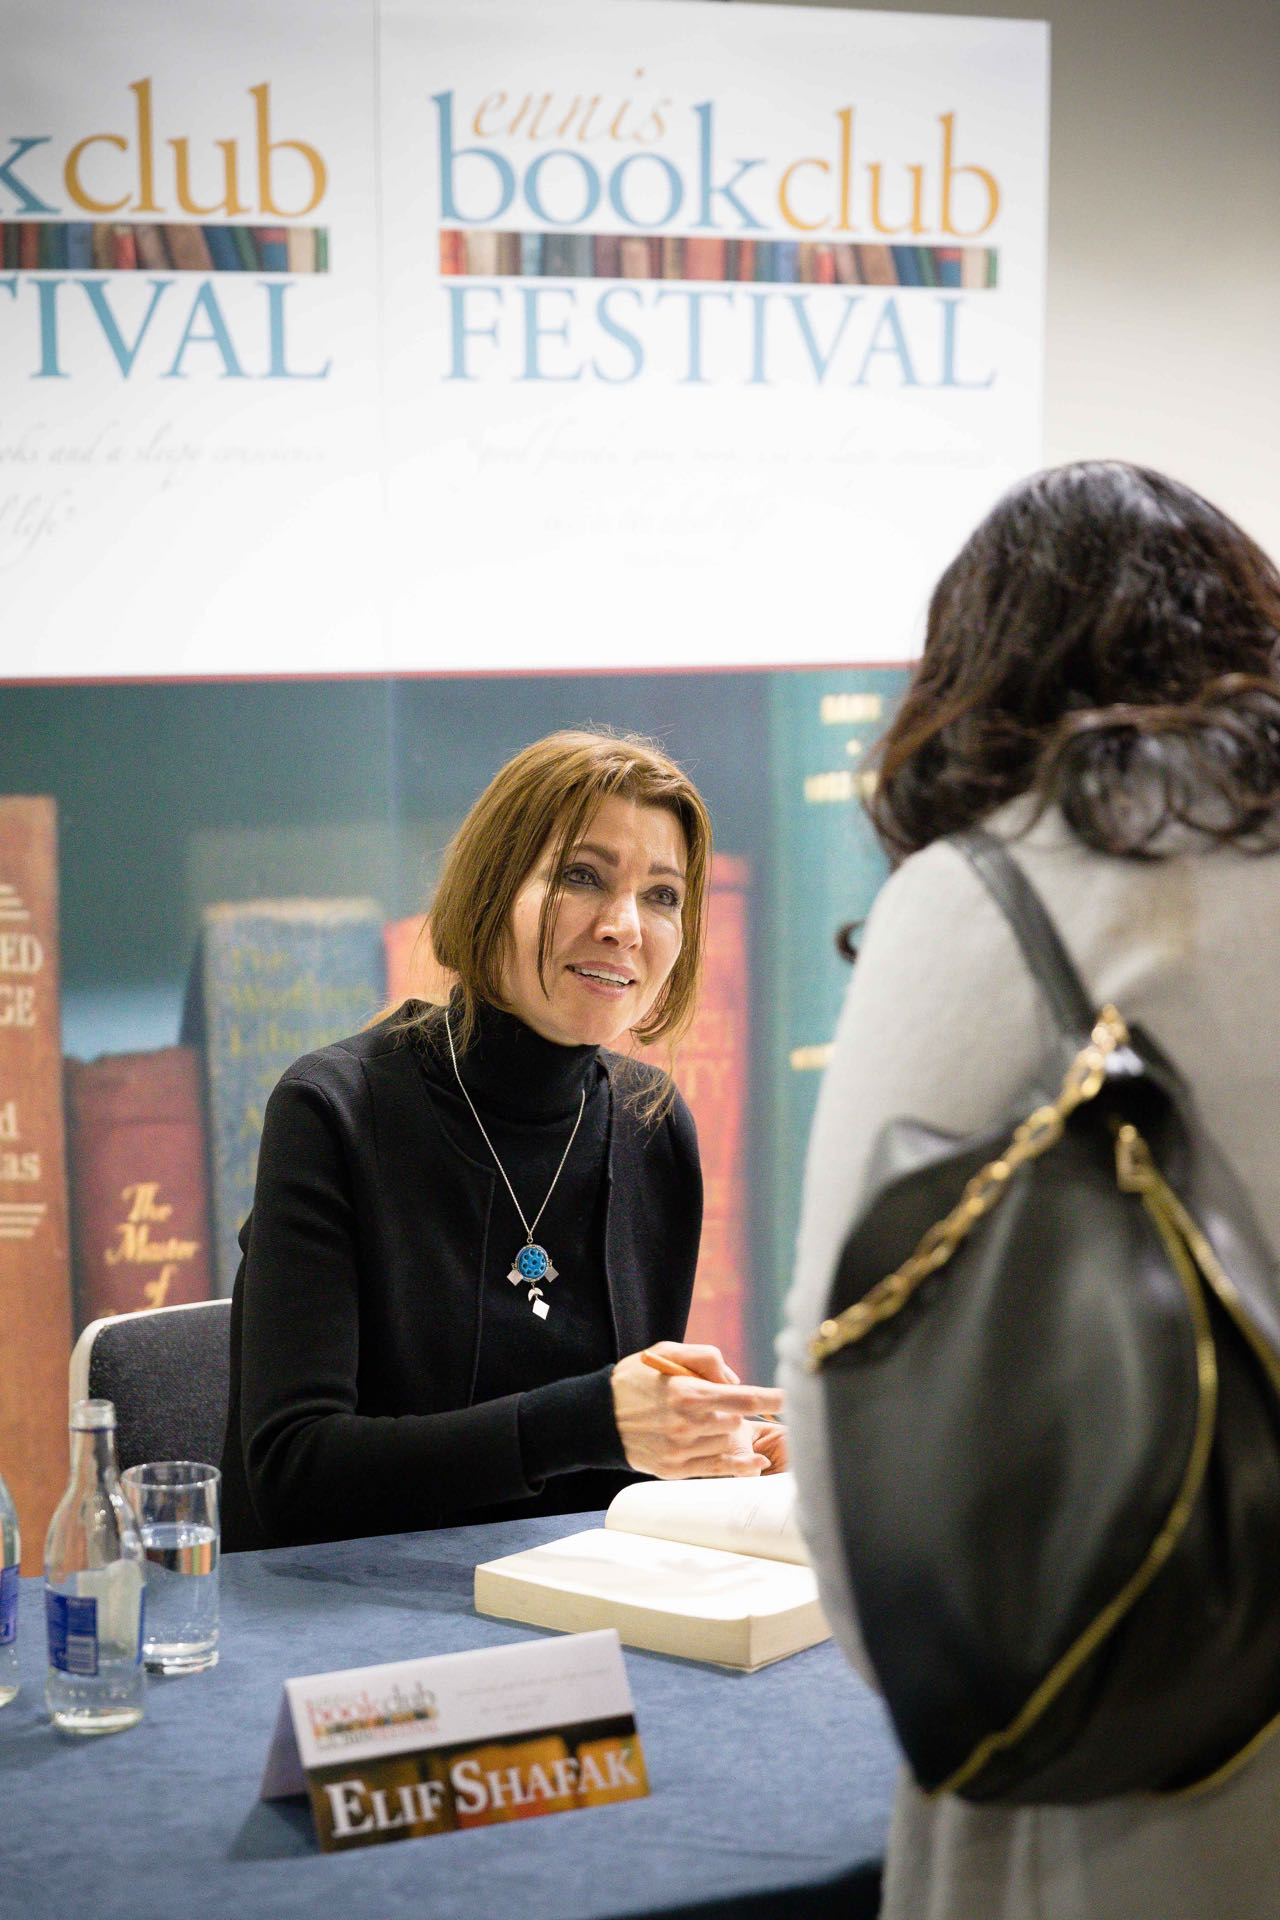 20190302_Ennis_Book_Club_Festival_2019_2725